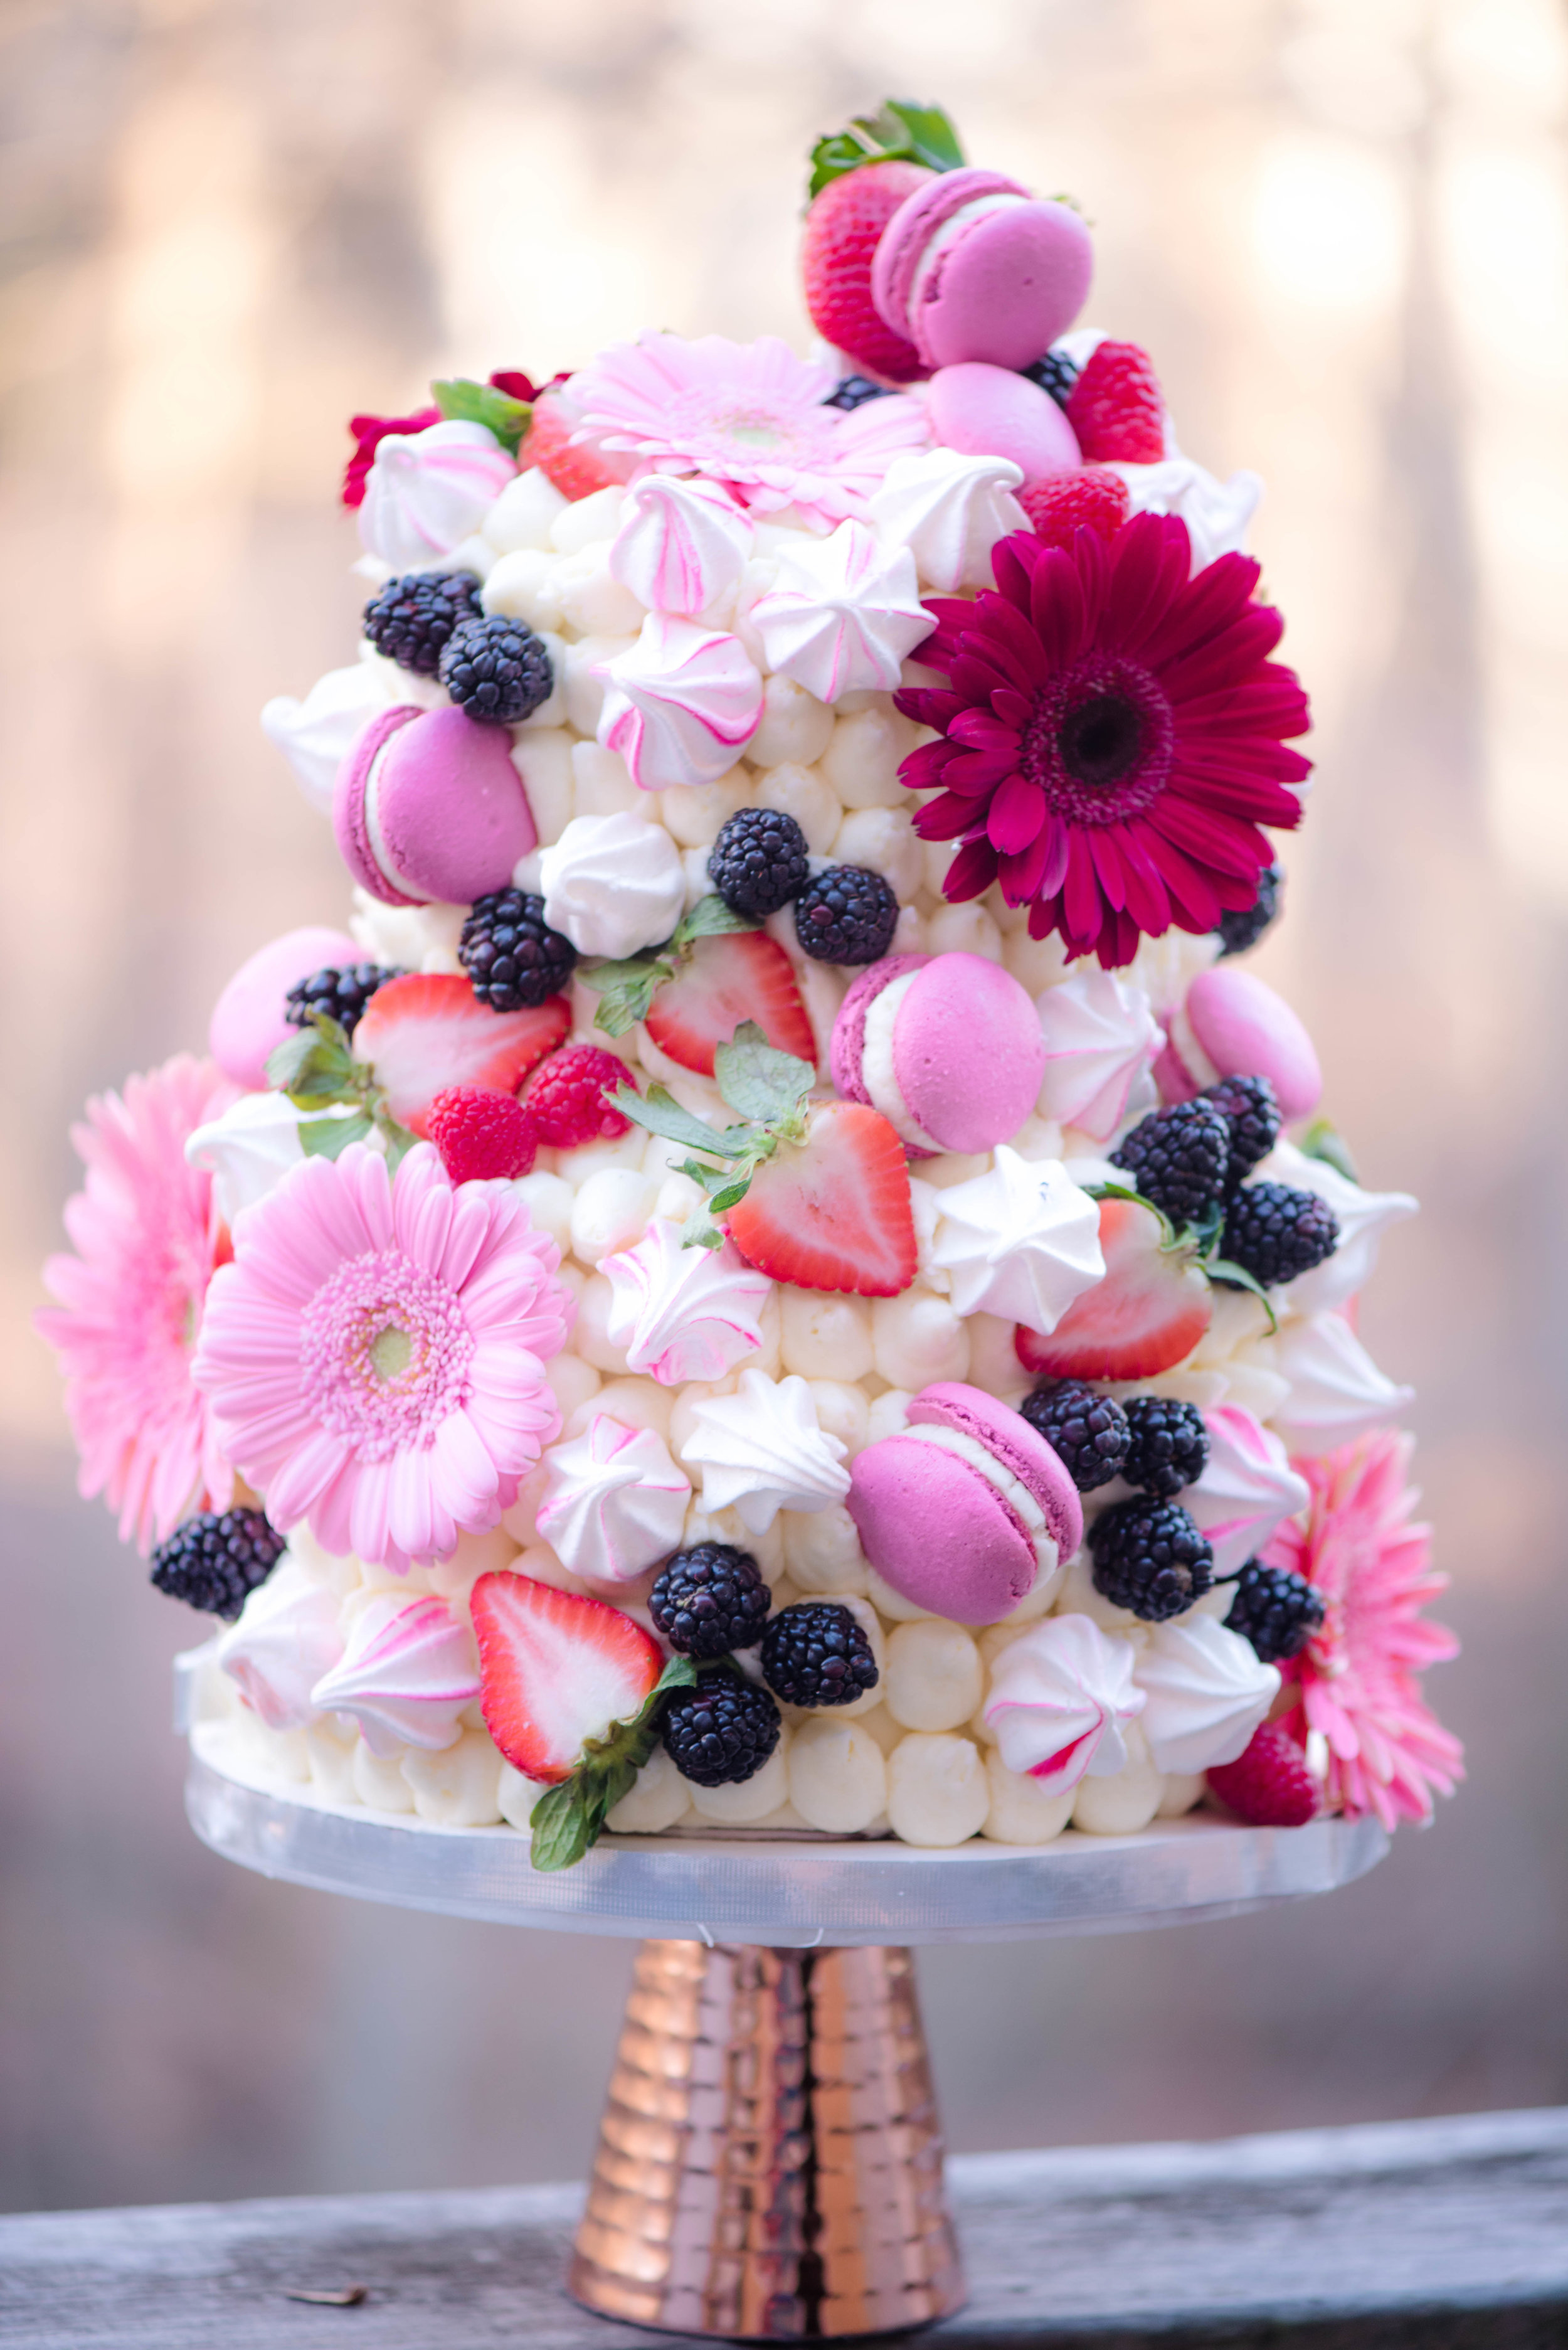 A berry pretty cake! - The cake would be perfect for a bithday or a wedding.